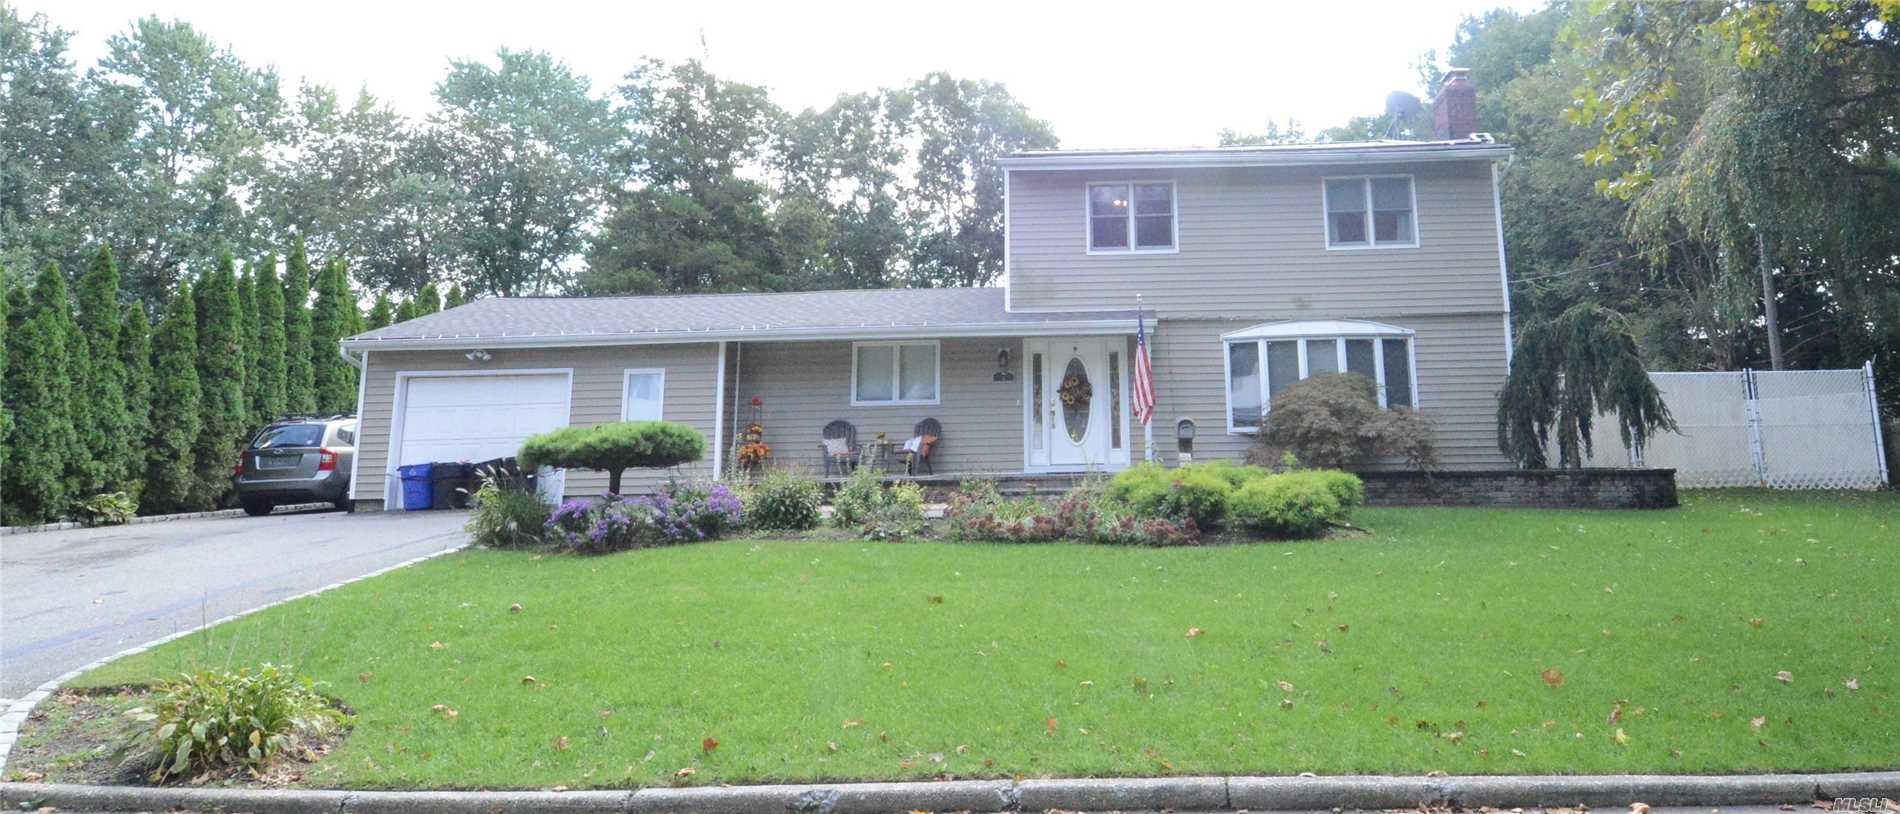 primary photo for 7 Corsa St, Dix Hills, NY 11746, US